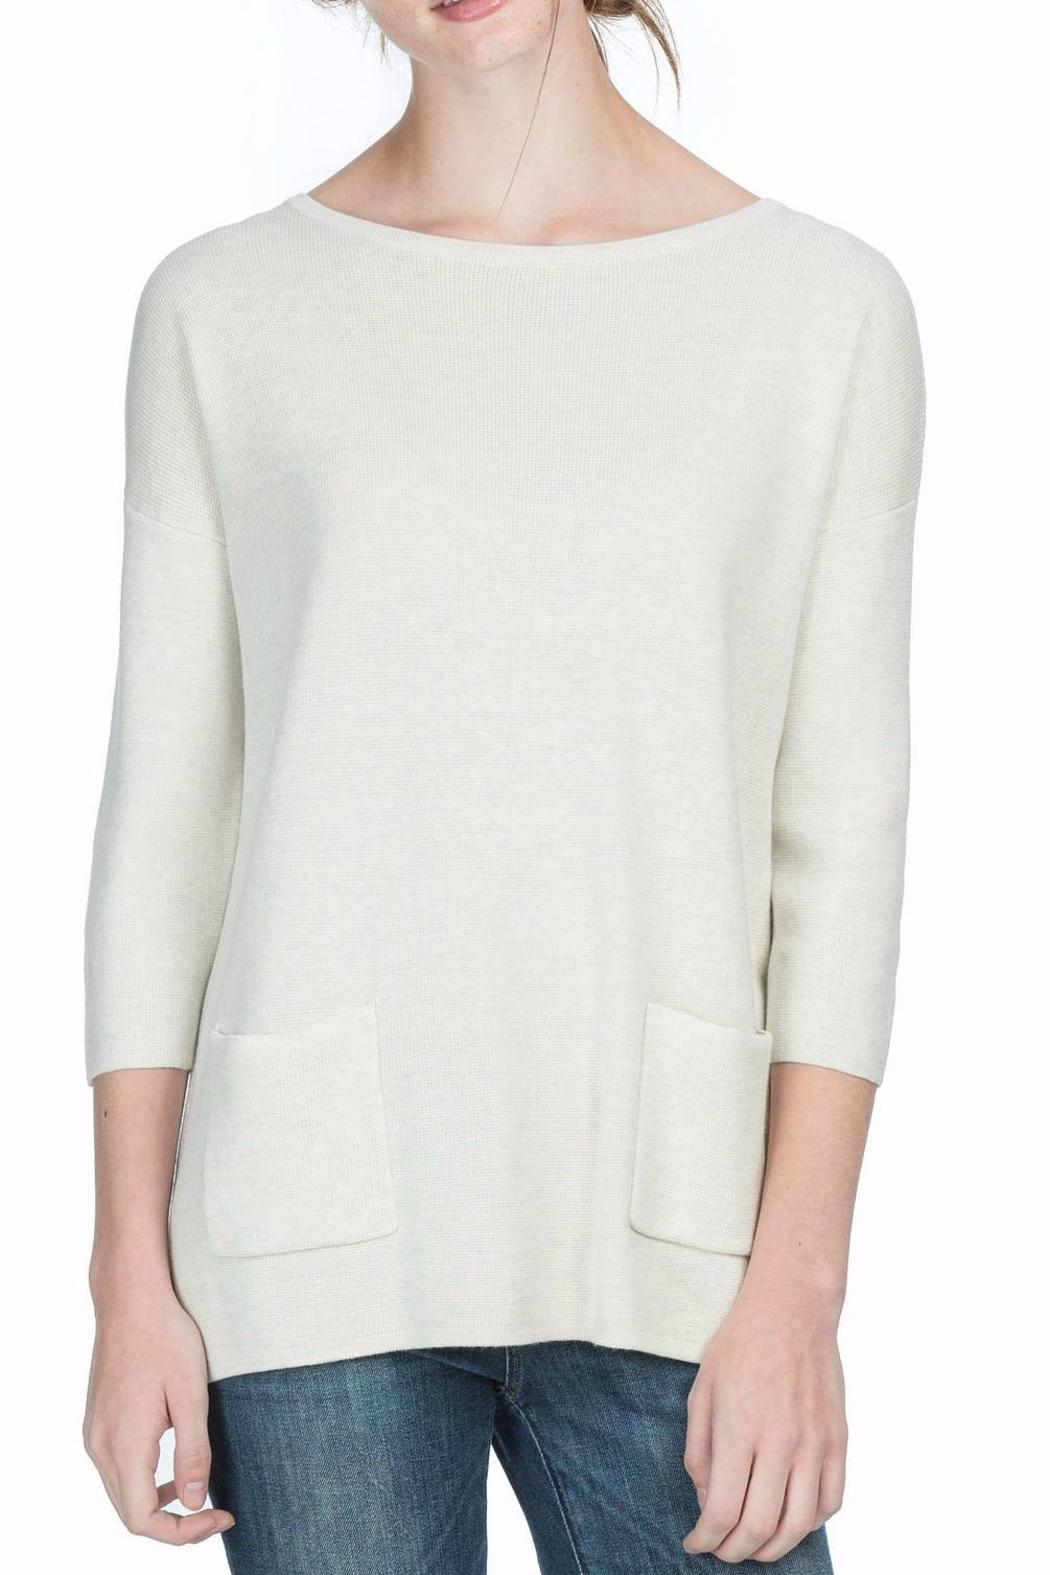 Lilla P Lightweight Tunic Sweater from Rhode Island by DISH ...